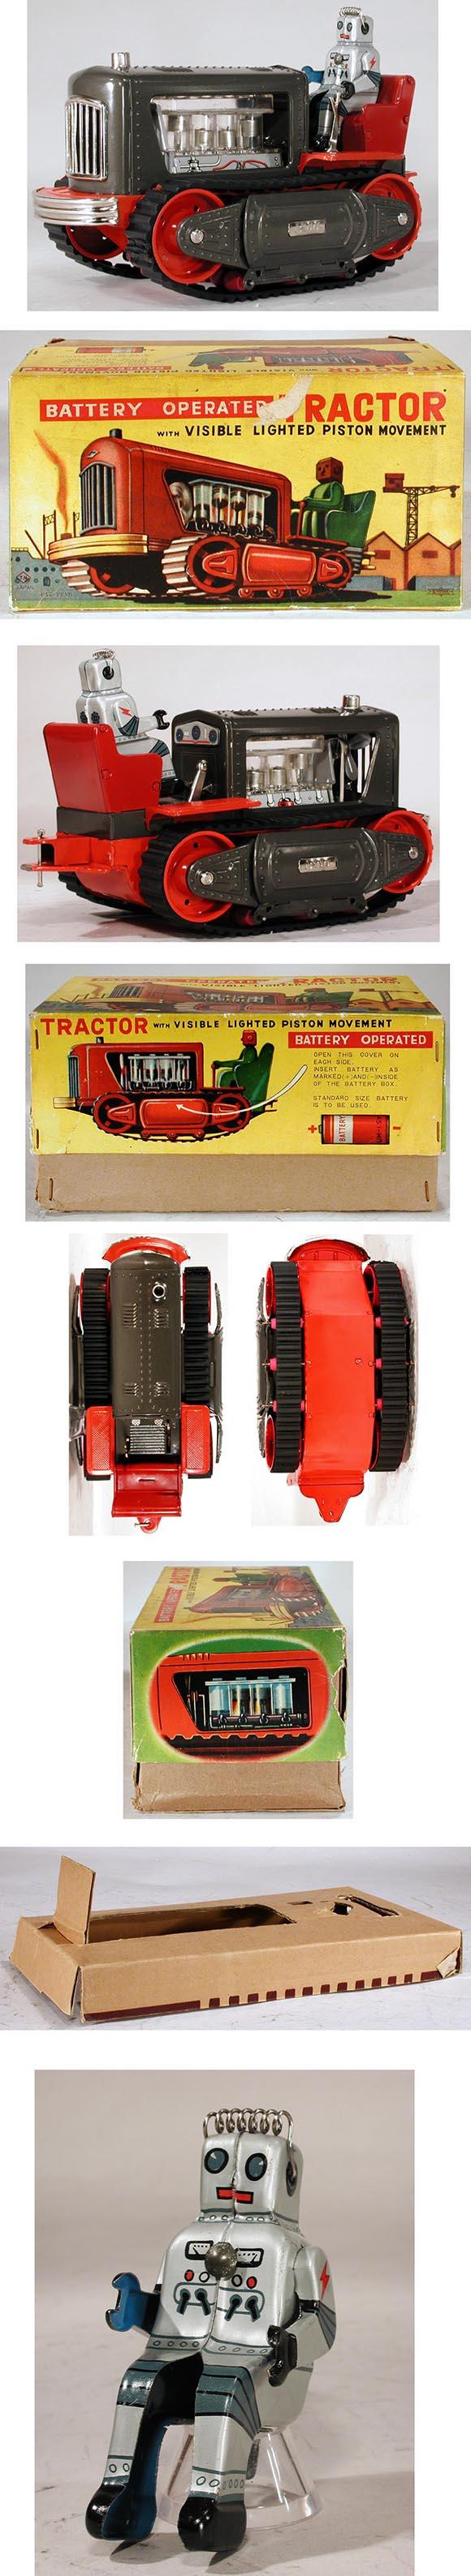 c.1957 Nomura, Battery Operated (Robot) Tractor in Original Box